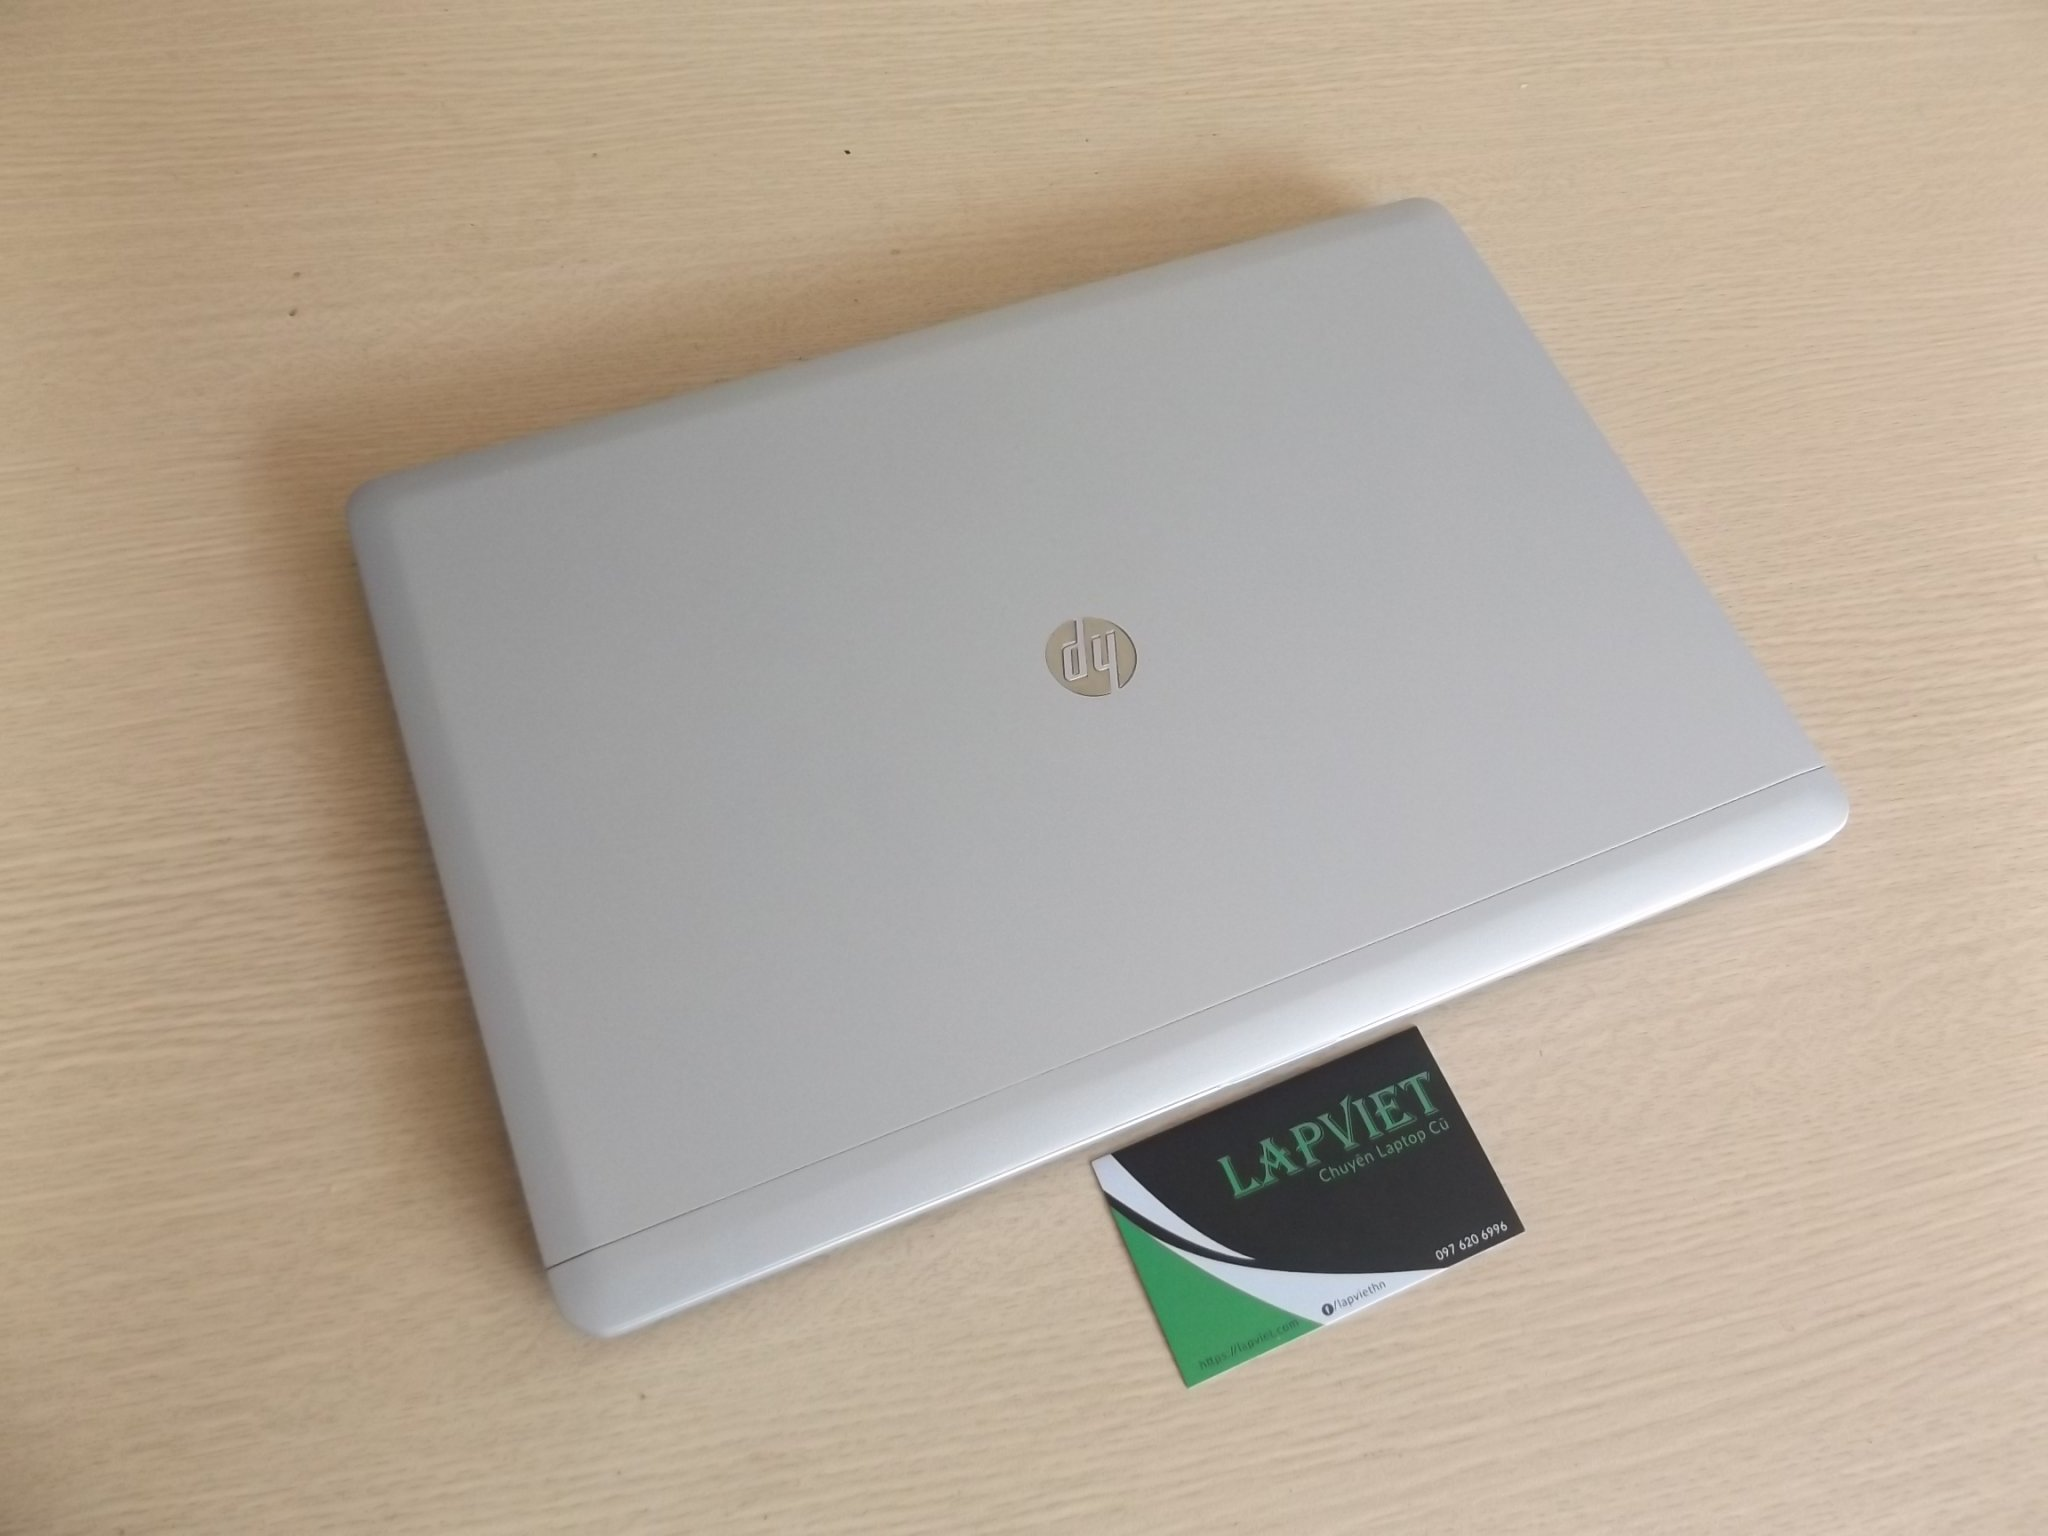 HP Elitebook Folio 9480m 4.JPG